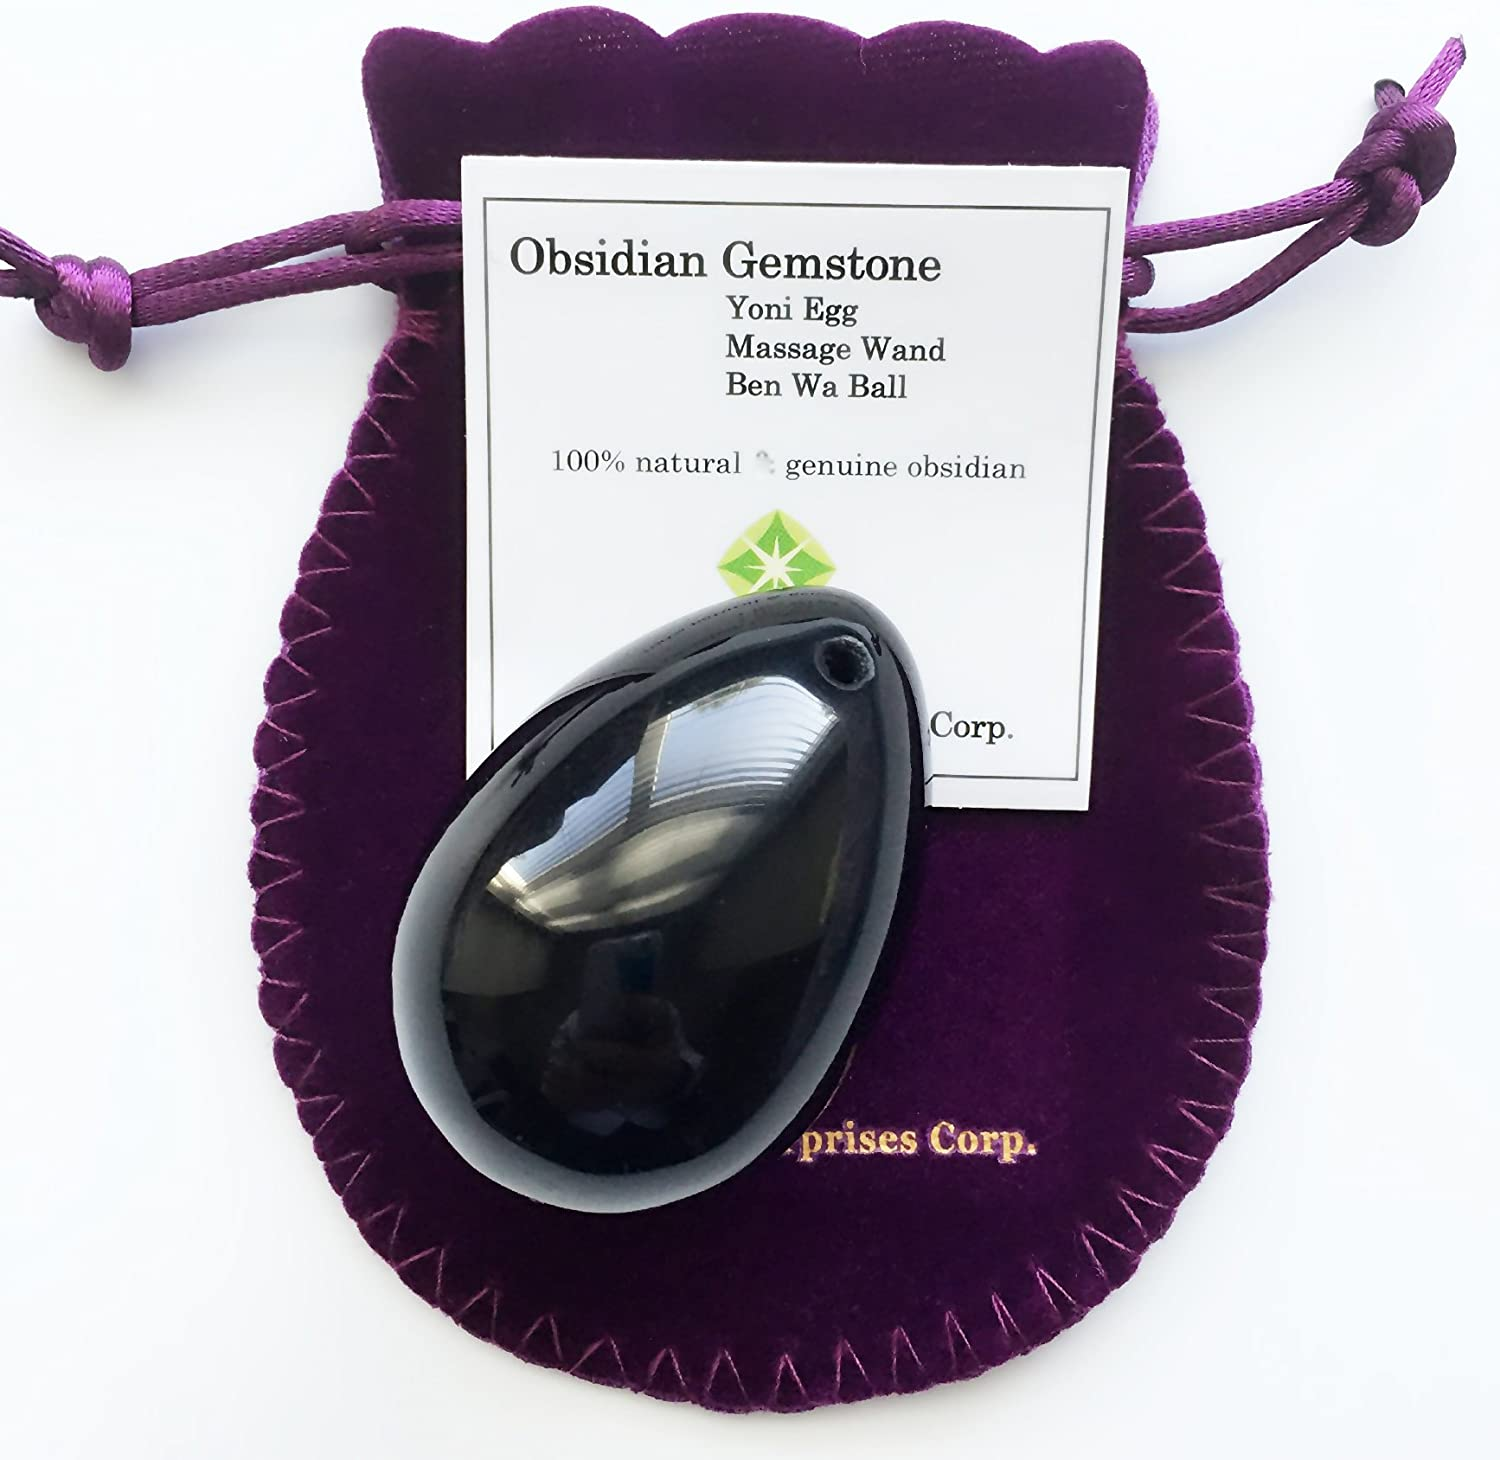 Large Size Yoni Egg, Pre-drilled, Made of Obsidian Gemstone, Entry Level Affordable, Manually Polished, with Certficate and Instructions, For Strengthening Love Muscles to Battle Urinary Incontinence,